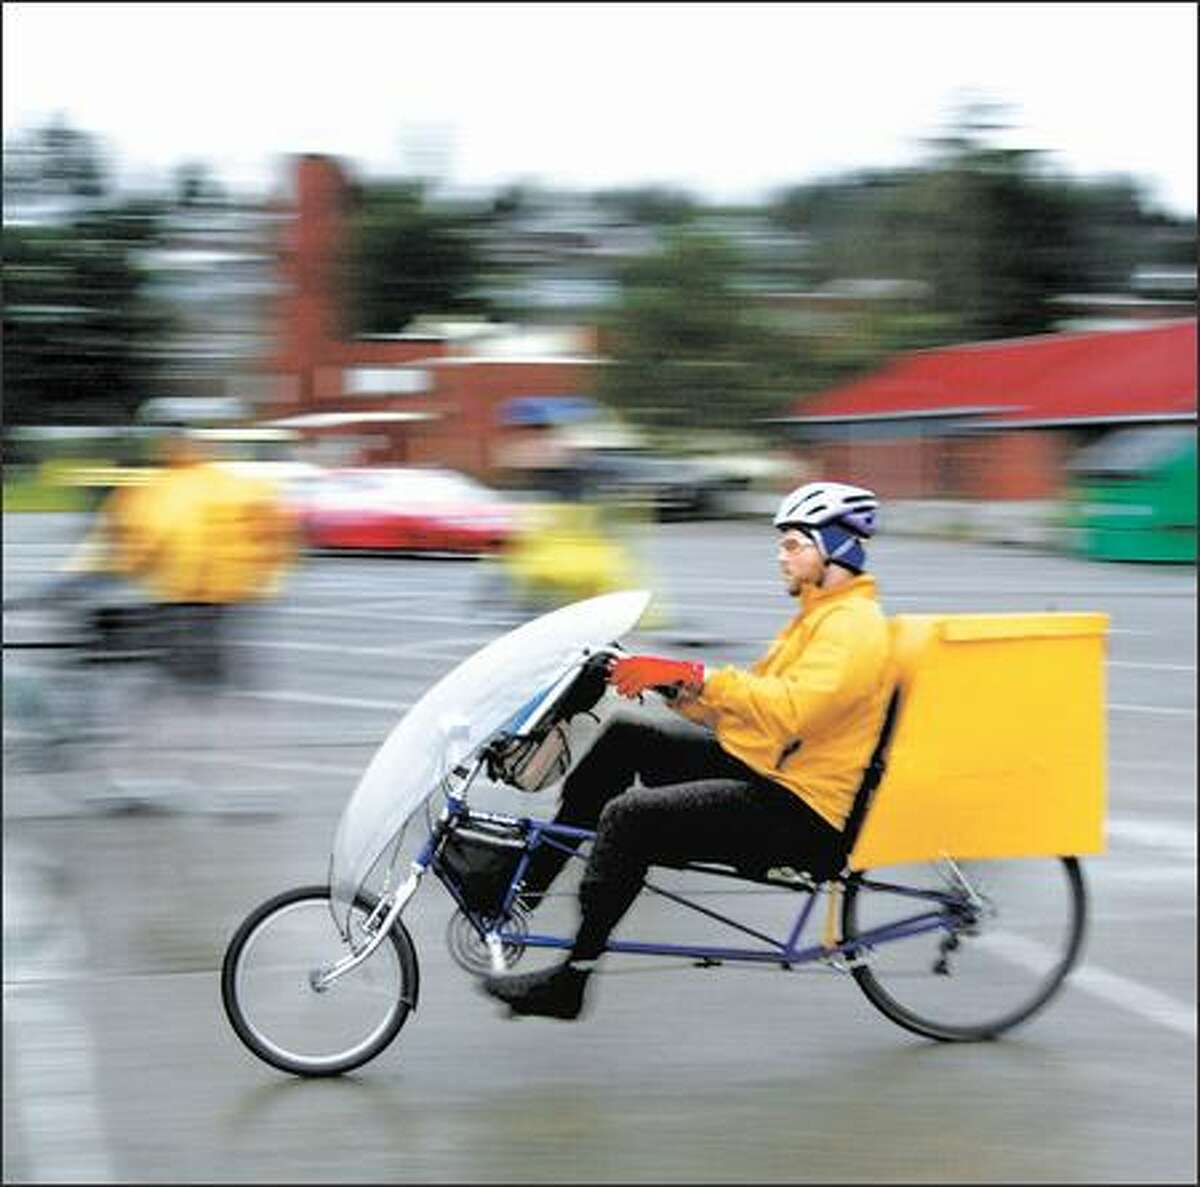 """Wood, riding his recumbent bike, teaches maneuvers to deal with hazards. """"Knowing how to ride effectively and safely, you can avoid most accidents,"""" he says."""